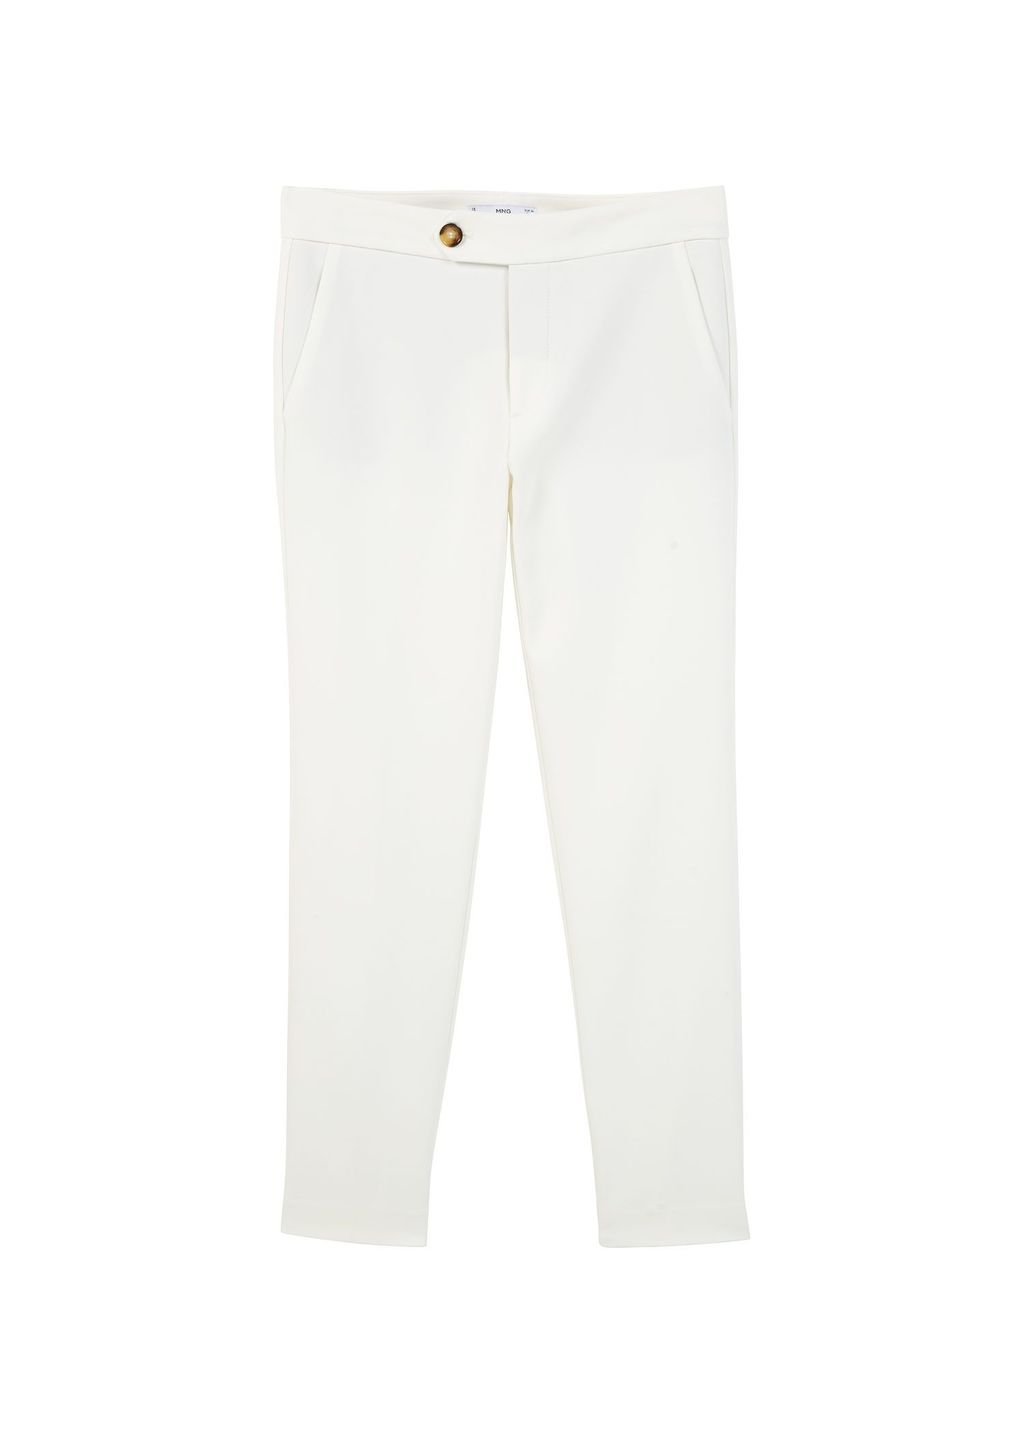 Straight Cotton Trousers, White - length: standard; pattern: plain; waist: mid/regular rise; predominant colour: white; occasions: casual, creative work; fibres: cotton - stretch; texture group: cotton feel fabrics; fit: slim leg; pattern type: fabric; style: standard; season: s/s 2016; wardrobe: basic